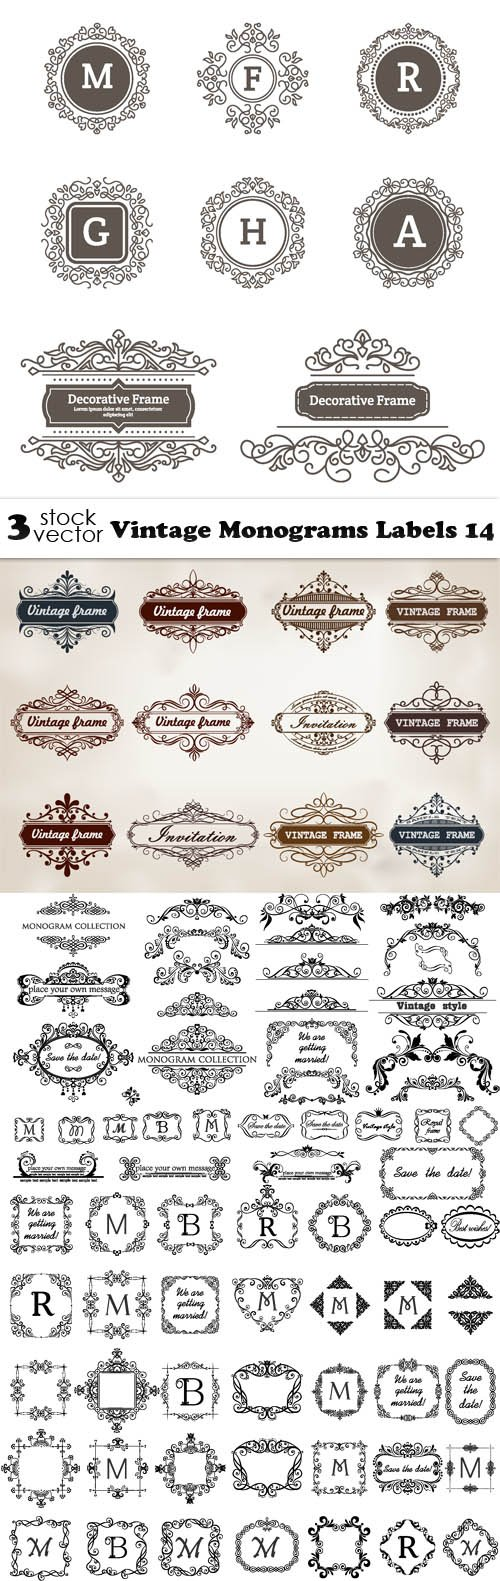 Vectors - Vintage Monograms Labels 14